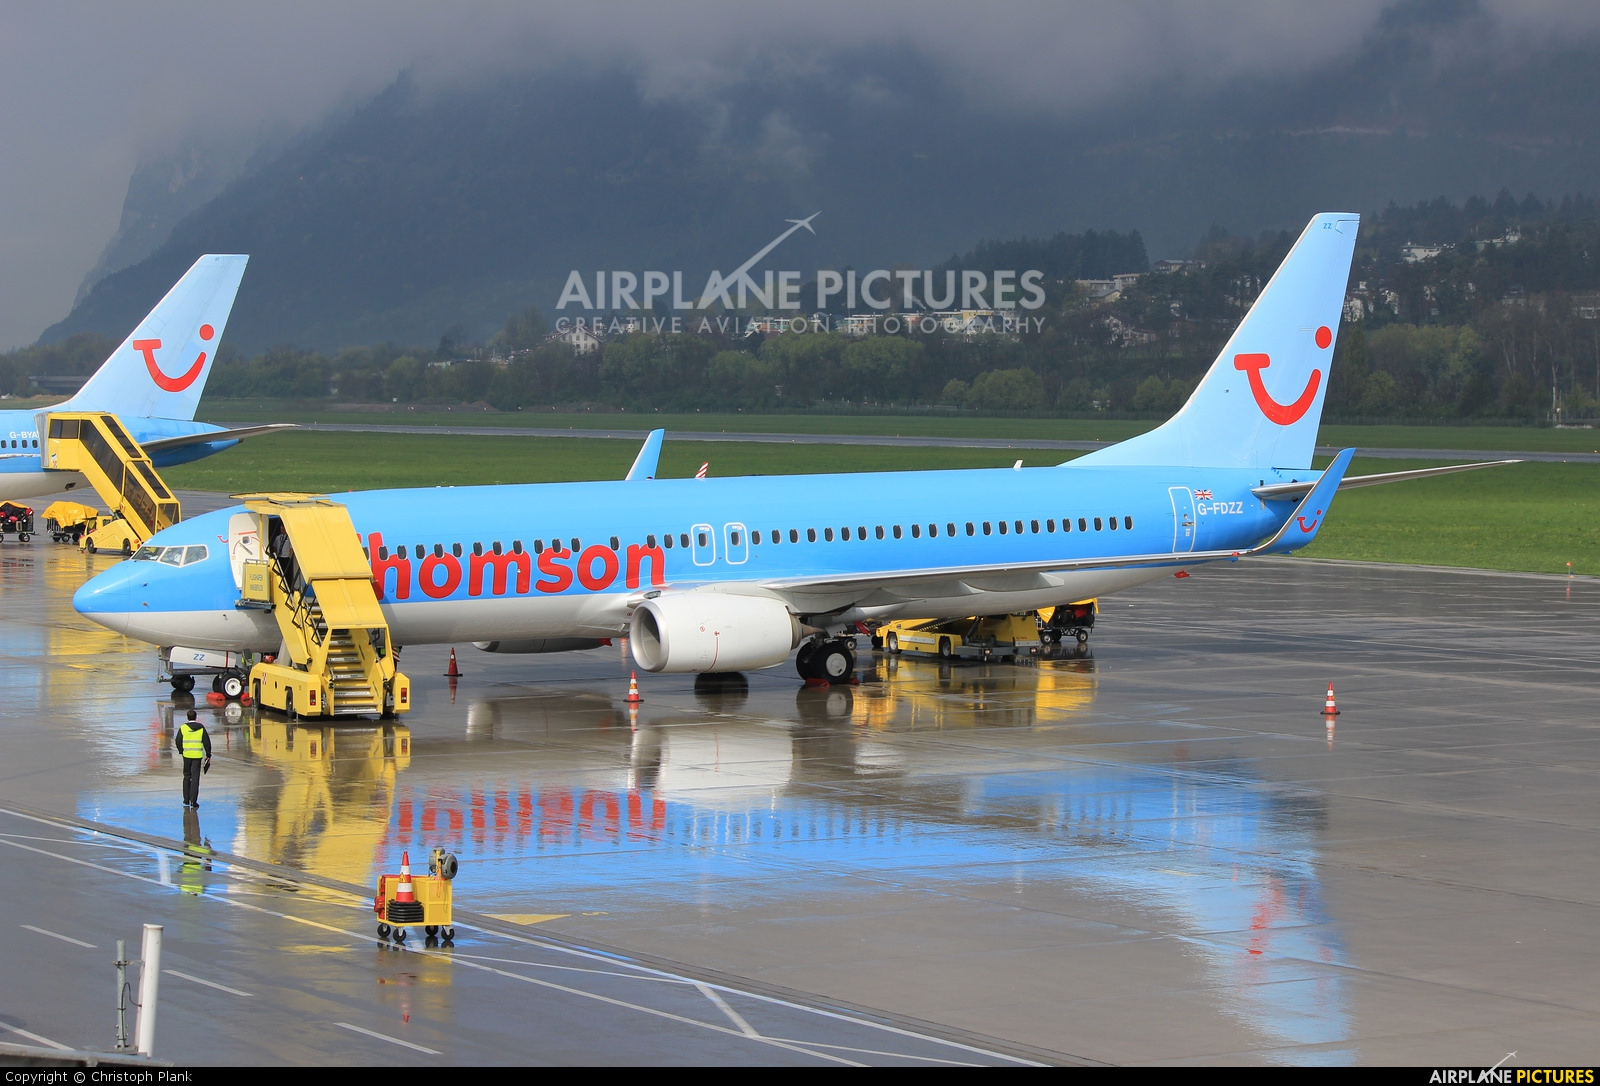 Thomson/Thomsonfly G-FDZZ aircraft at Innsbruck